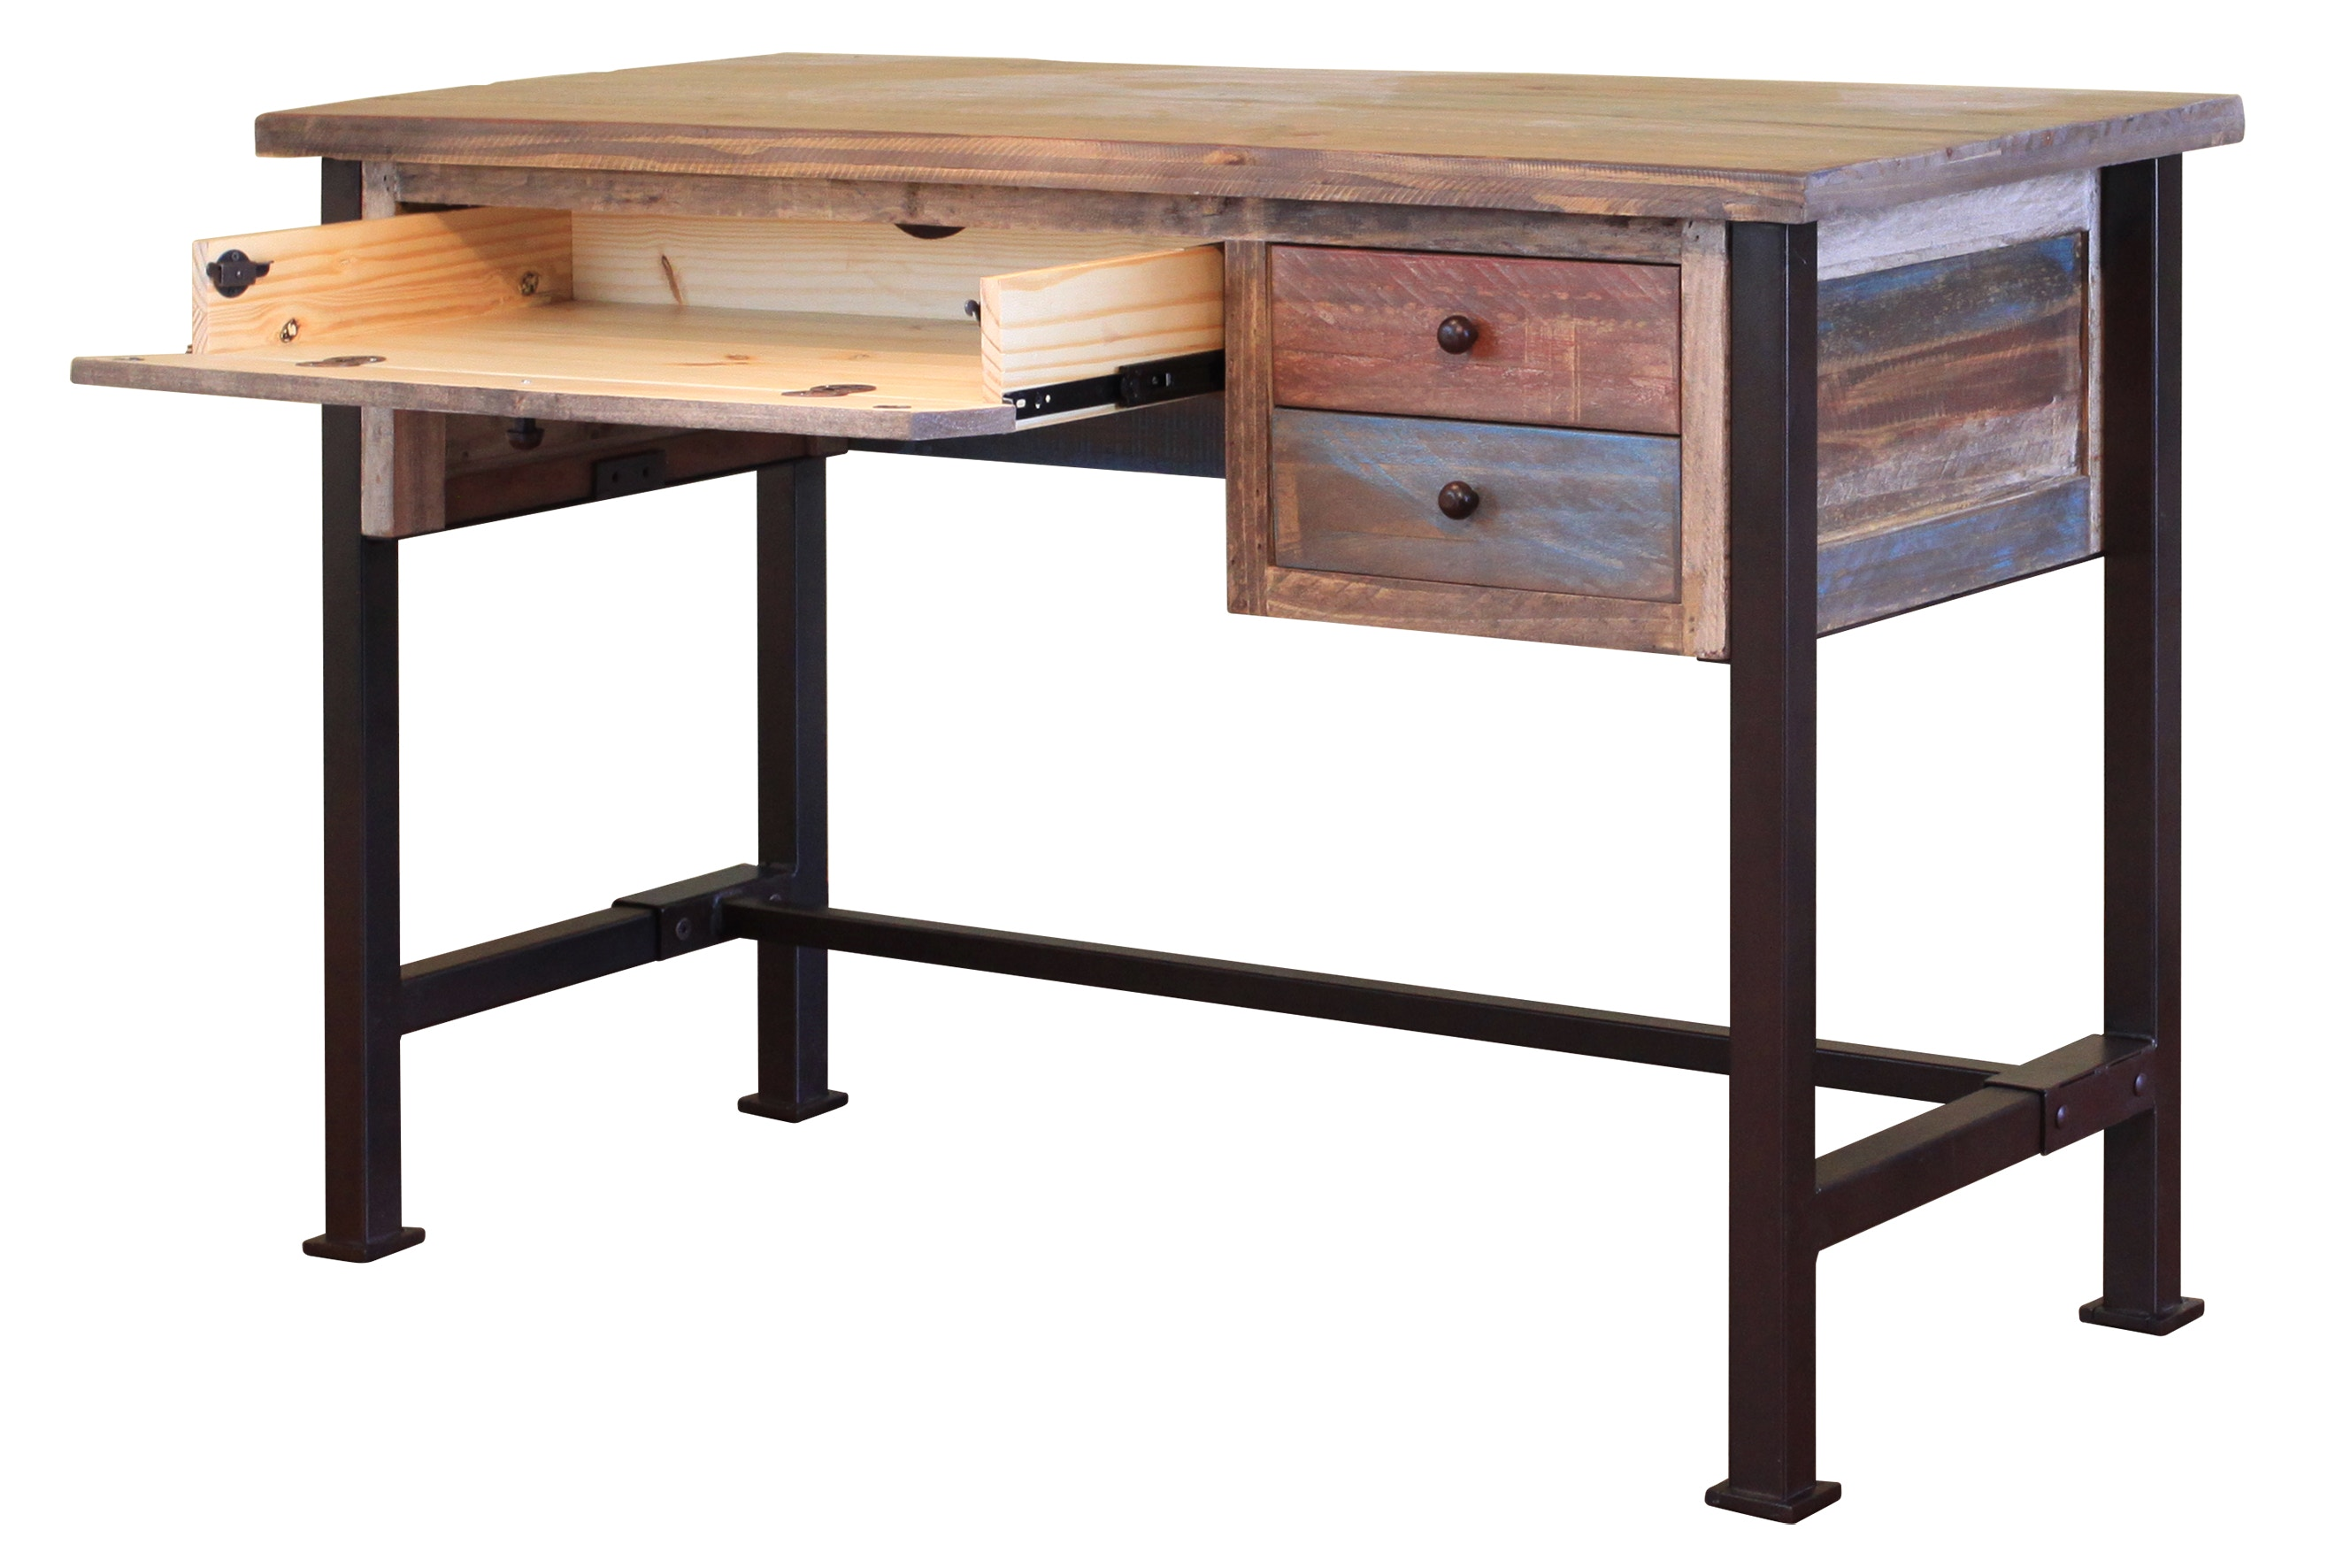 Ordinaire International Furniture Direct Home Office Writing Desk, Reclaimed Wood  Finish (KD)